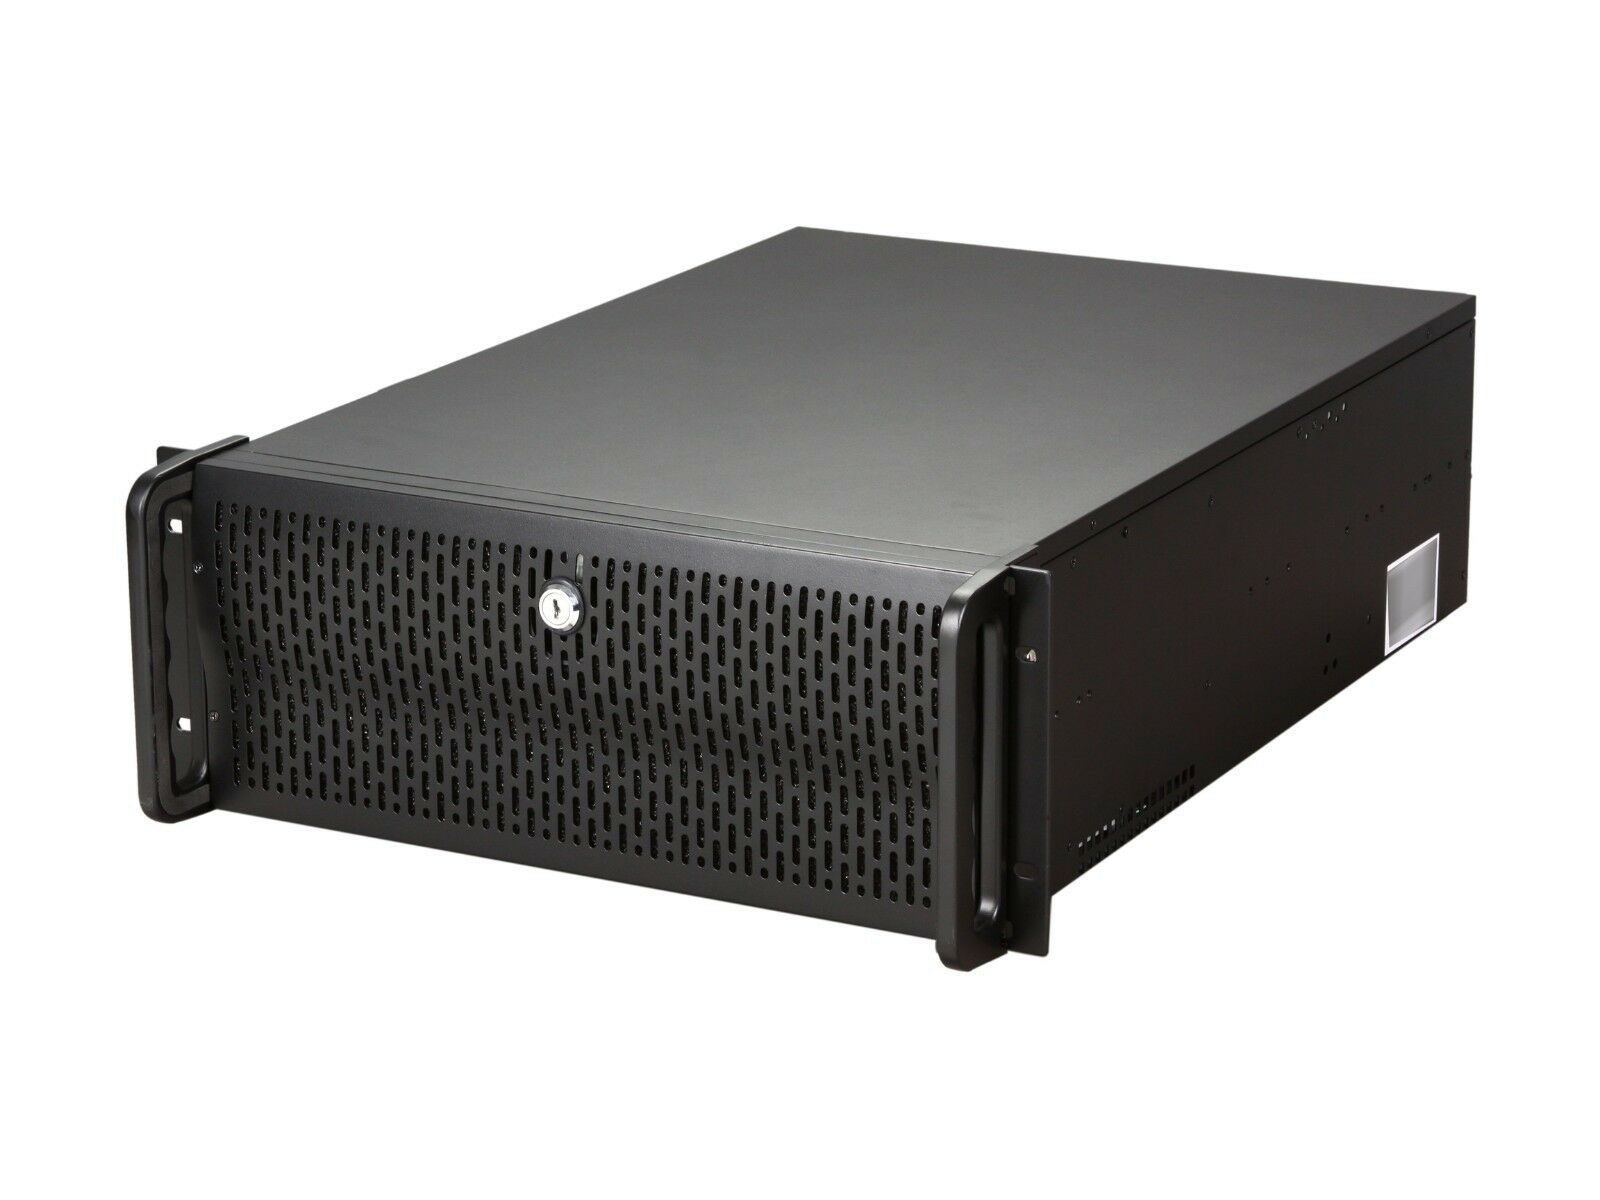 Rosewill Rsv L4000 4u Rackmount Server Chassis With 8